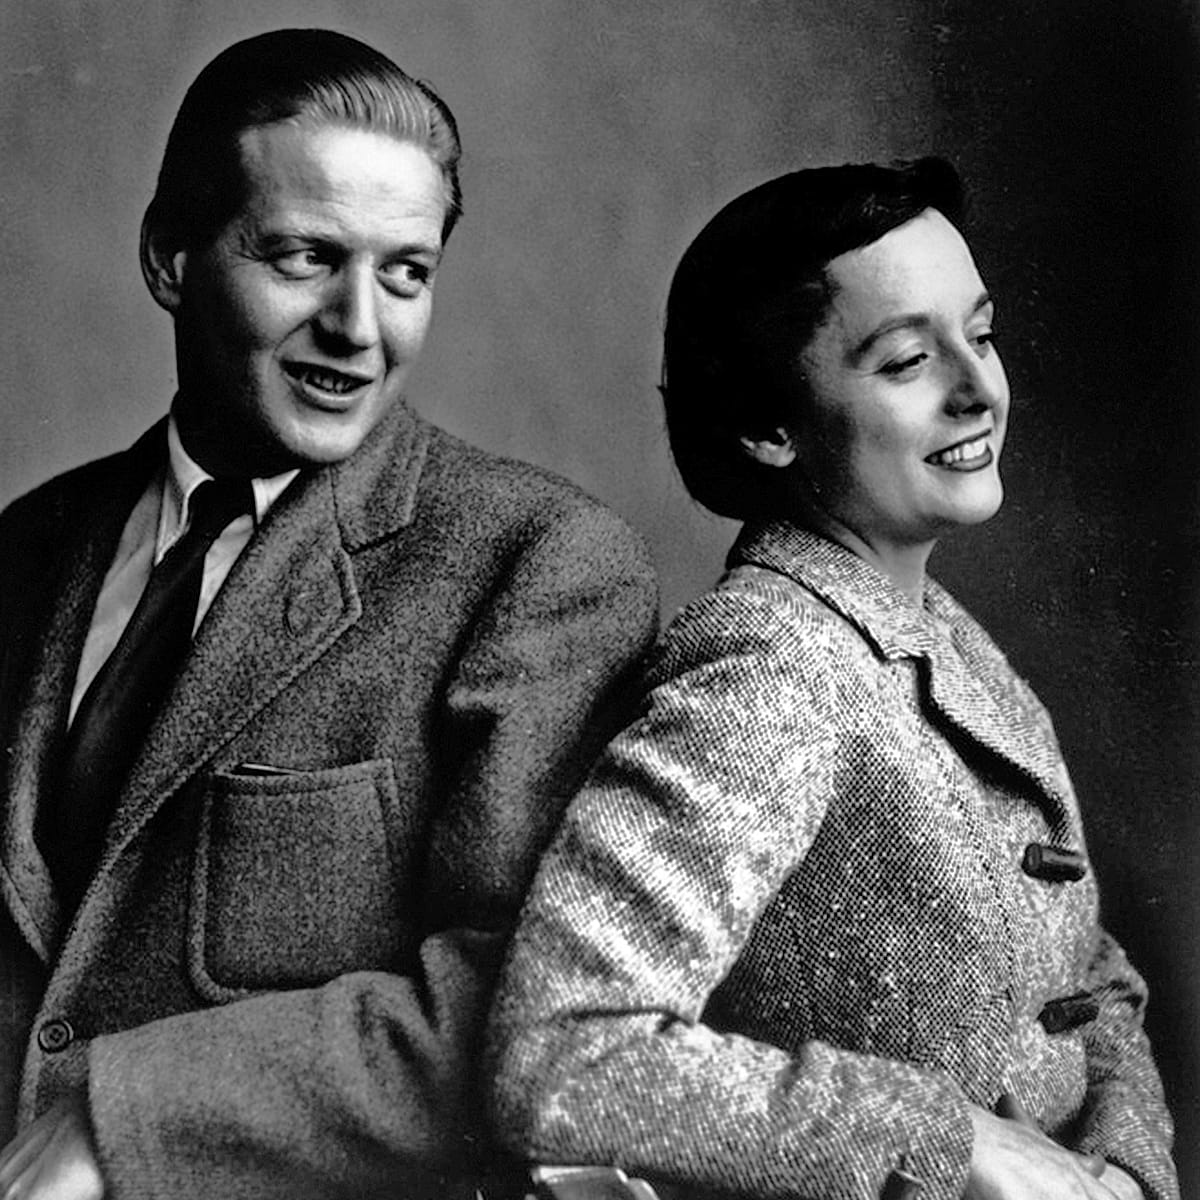 Hans G. Knoll & Florence Knoll, Courtesy of Knoll, Inc.